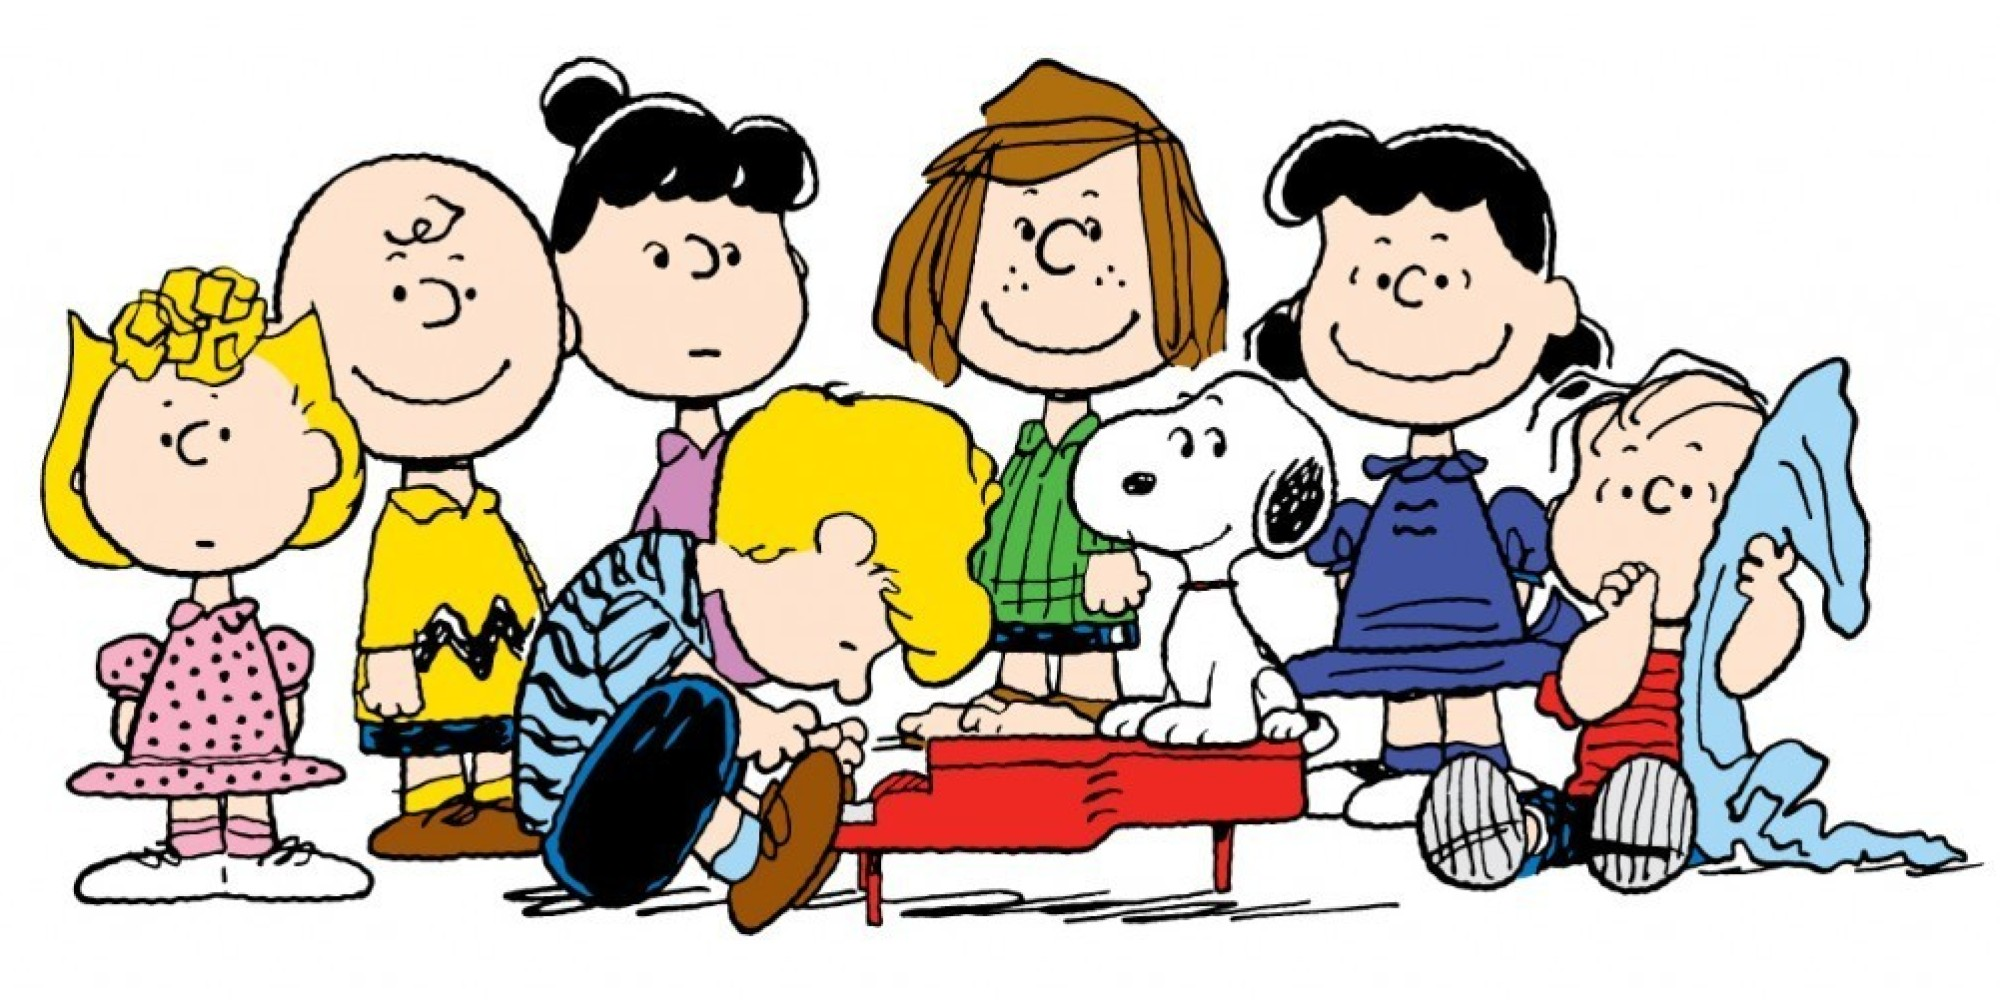 Image result for peanuts characters images